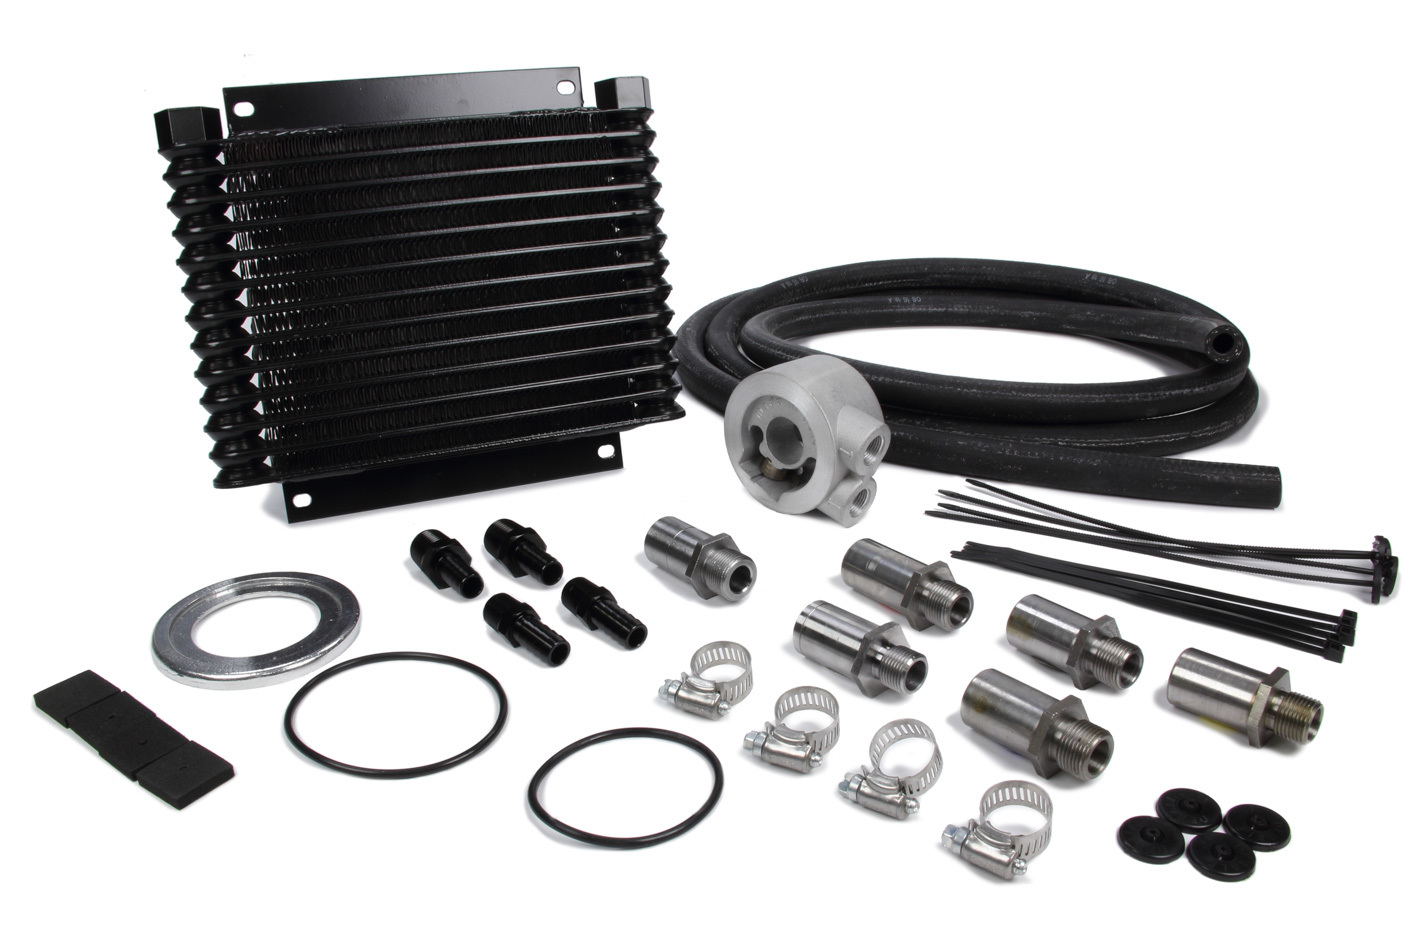 Derale 15405 Fluid Cooler, 10-1/8 x 8-7/8 x 1-1/4 in, Plate Type, 1/2 in NPT Female Inlet / Outlet, Fittings / Hardware / Hose, Aluminum, Black Powder Coat, Engine Oil, Kit